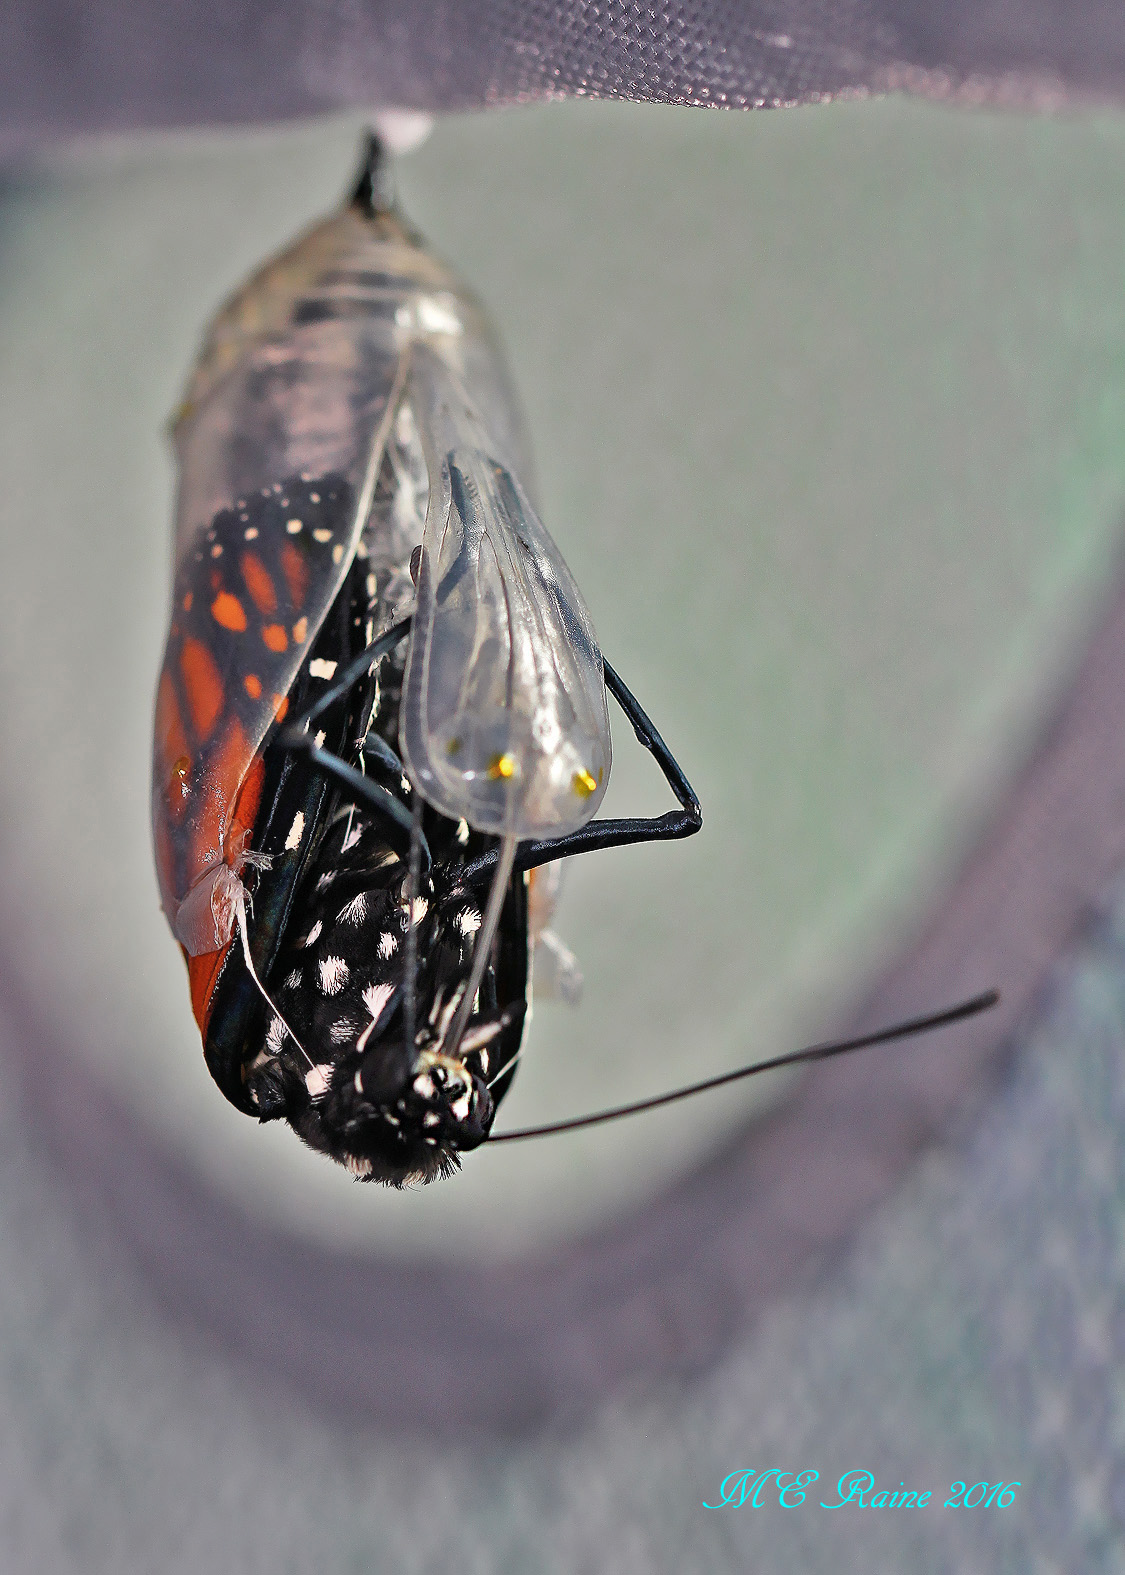 monarch-butterfly-emergence-of-no-13-in-safe-house-1-091916-9am-ok-wm